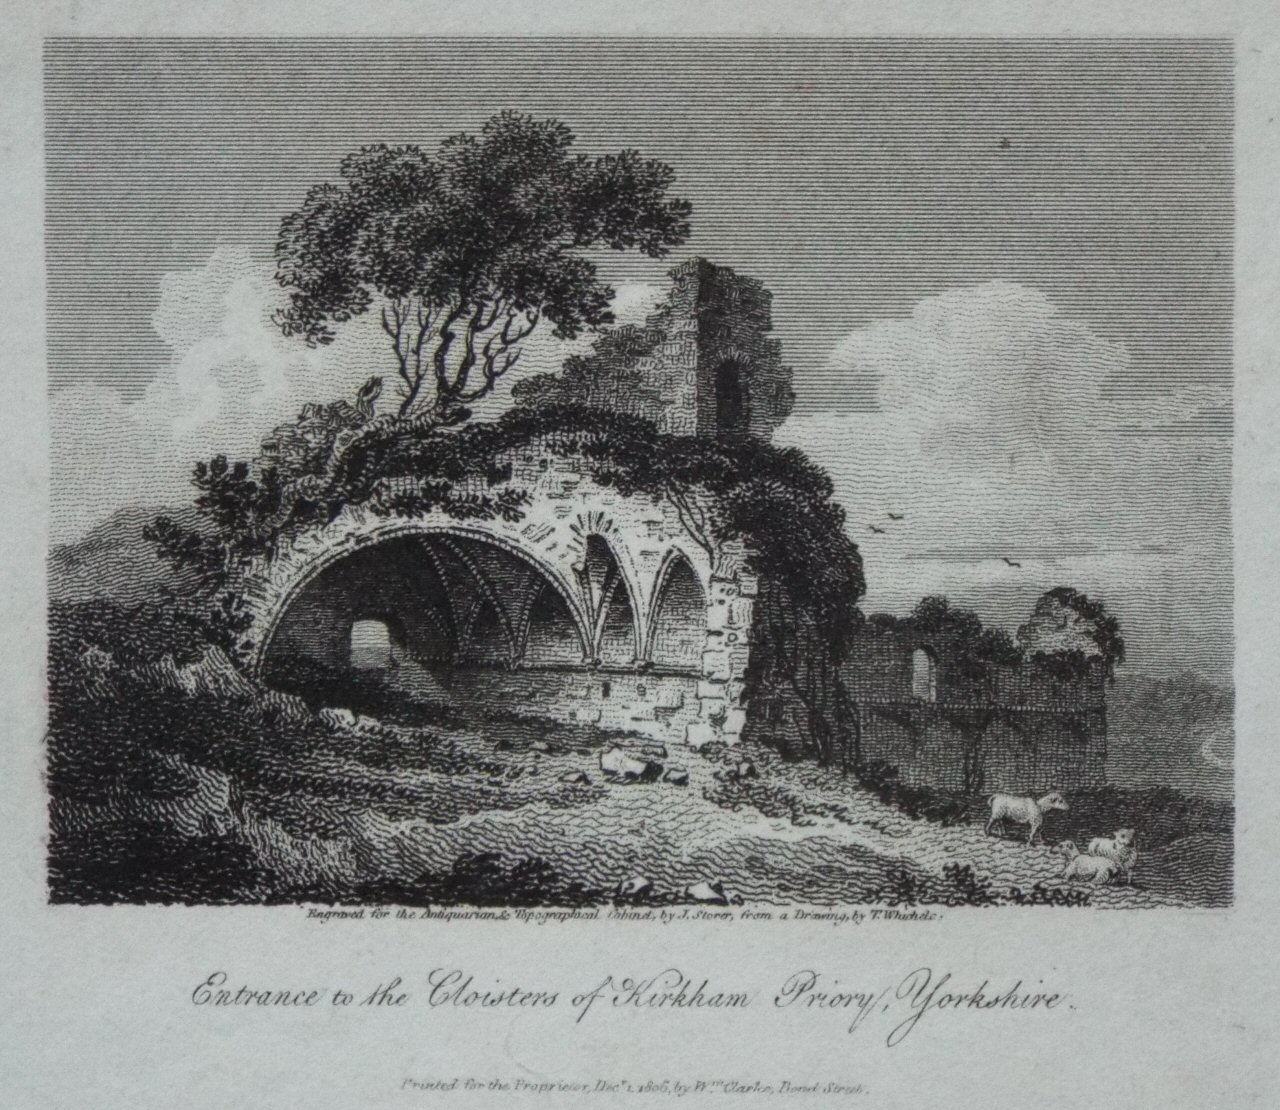 Print - Entrance to the Cloisters of Kirkham Priory, Yorkshire. - Storer